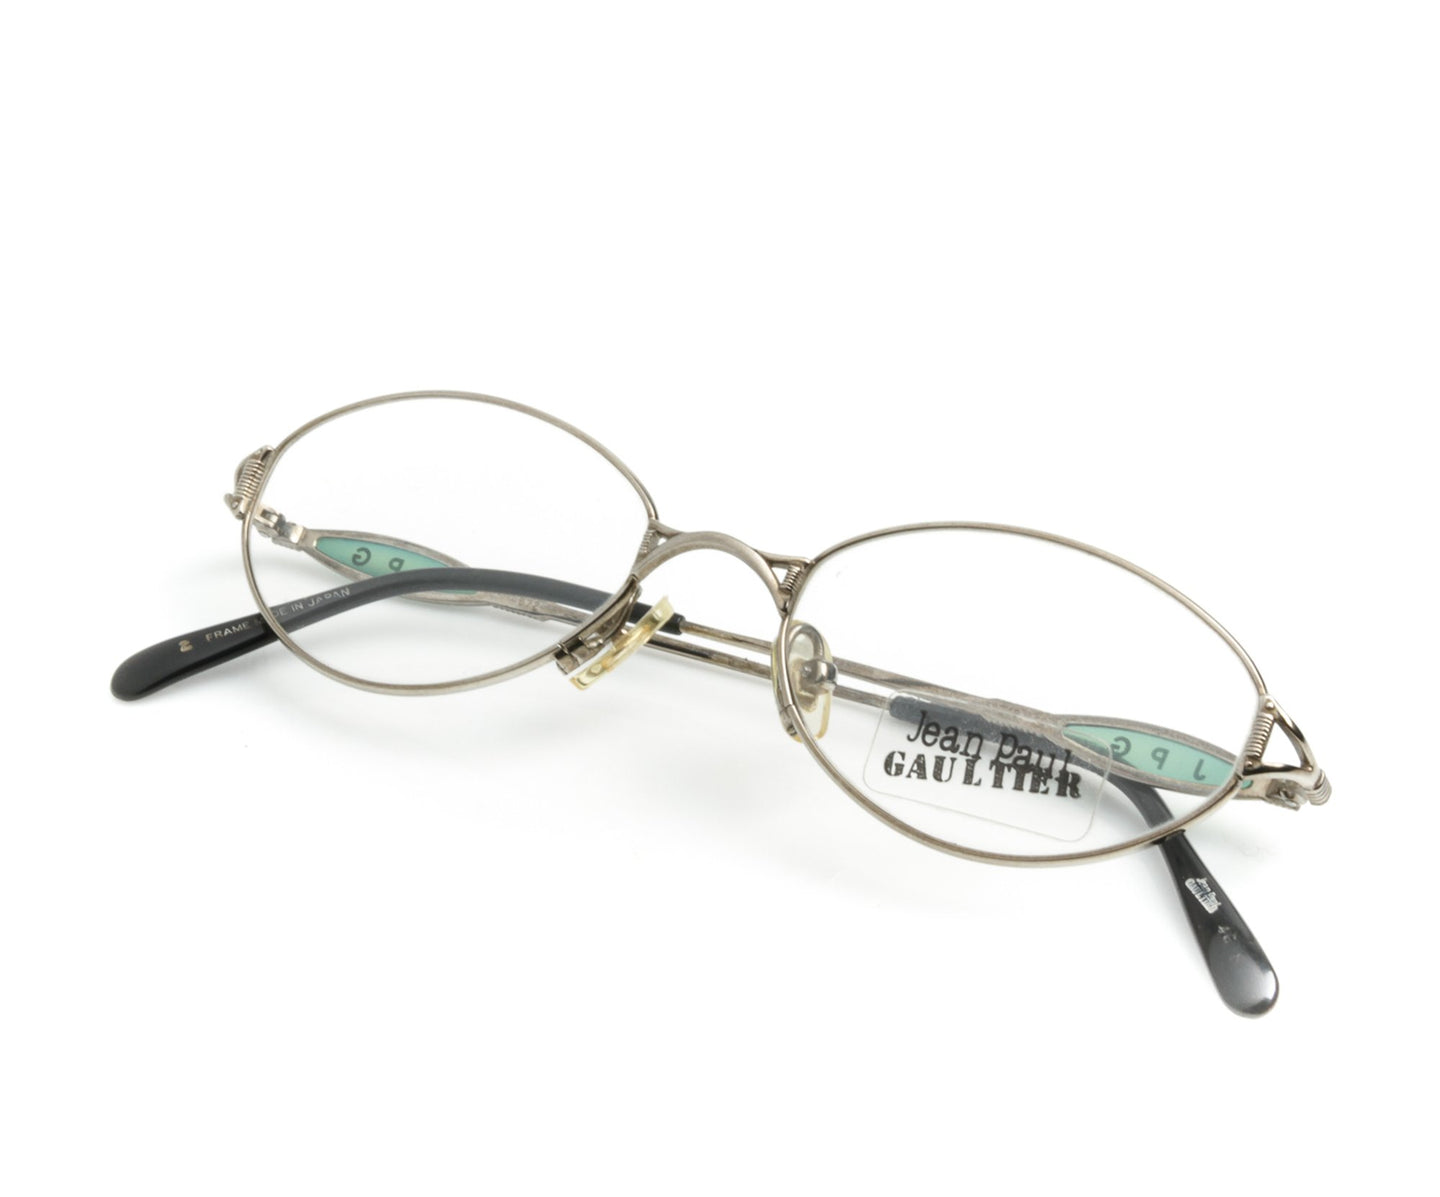 Jean Paul Gaultier 55-4672 2, Jean Paul Gaultier , glasses frames, eyeglasses online, eyeglass frames, mens glasses, womens glasses, buy glasses online, designer eyeglasses, vintage sunglasses, retro sunglasses, vintage glasses, sunglass, eyeglass, glasses, lens, vintage frames company, vf